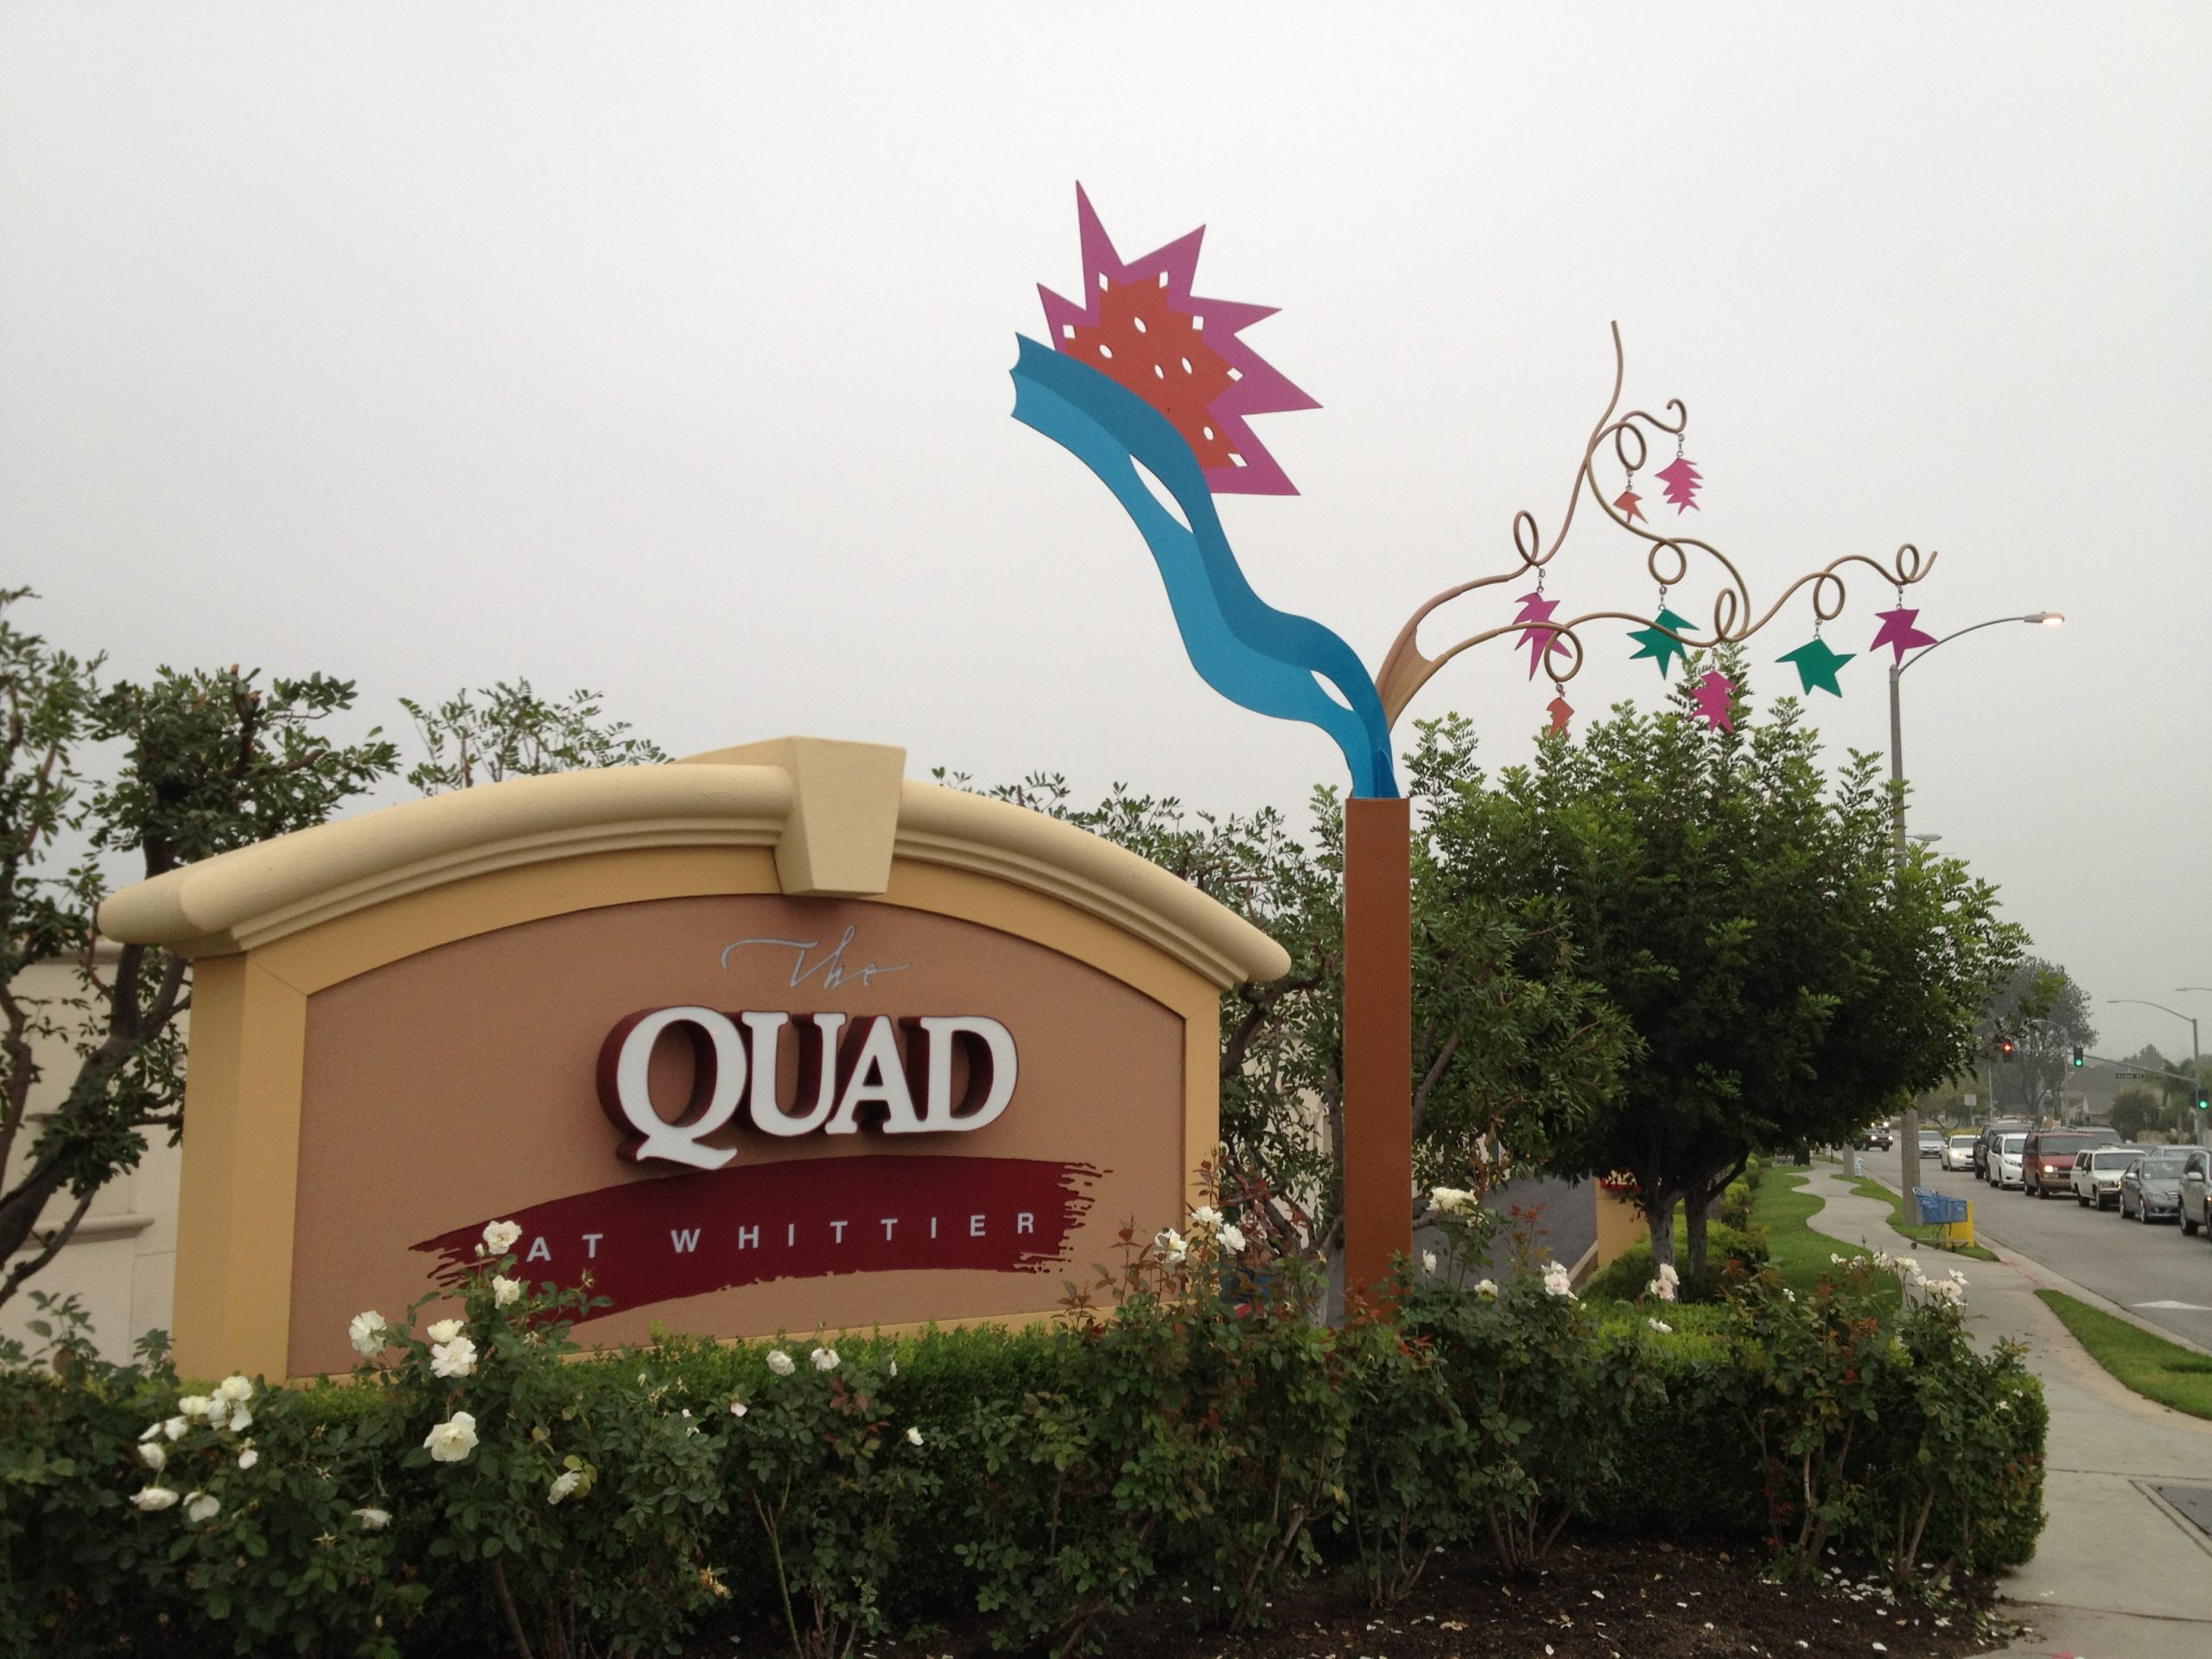 Welcome Friends forThe Quad and City of Whittier